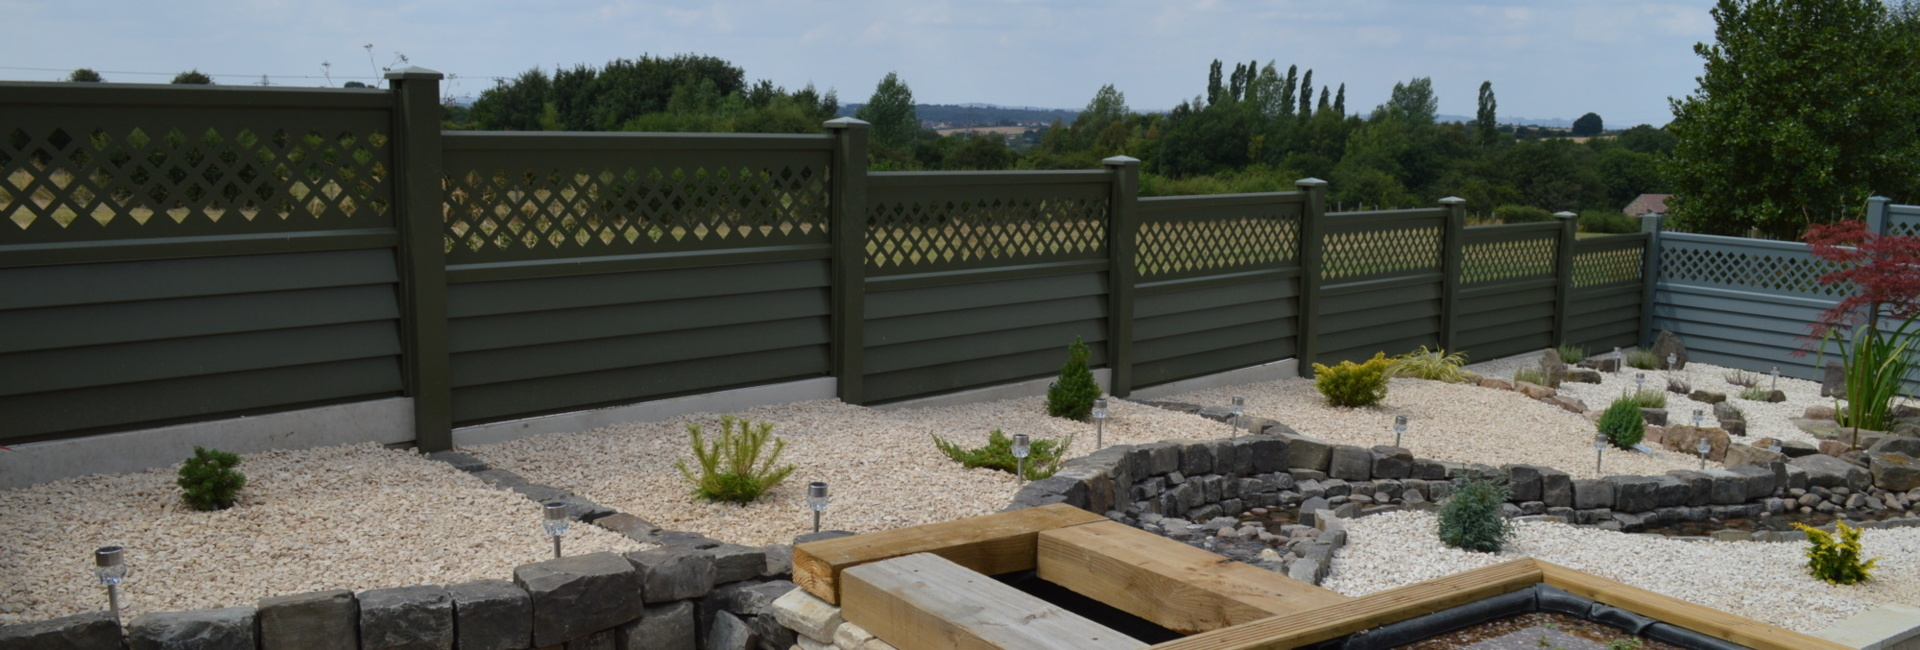 Permafence | Fencing that lasts over 25 Years